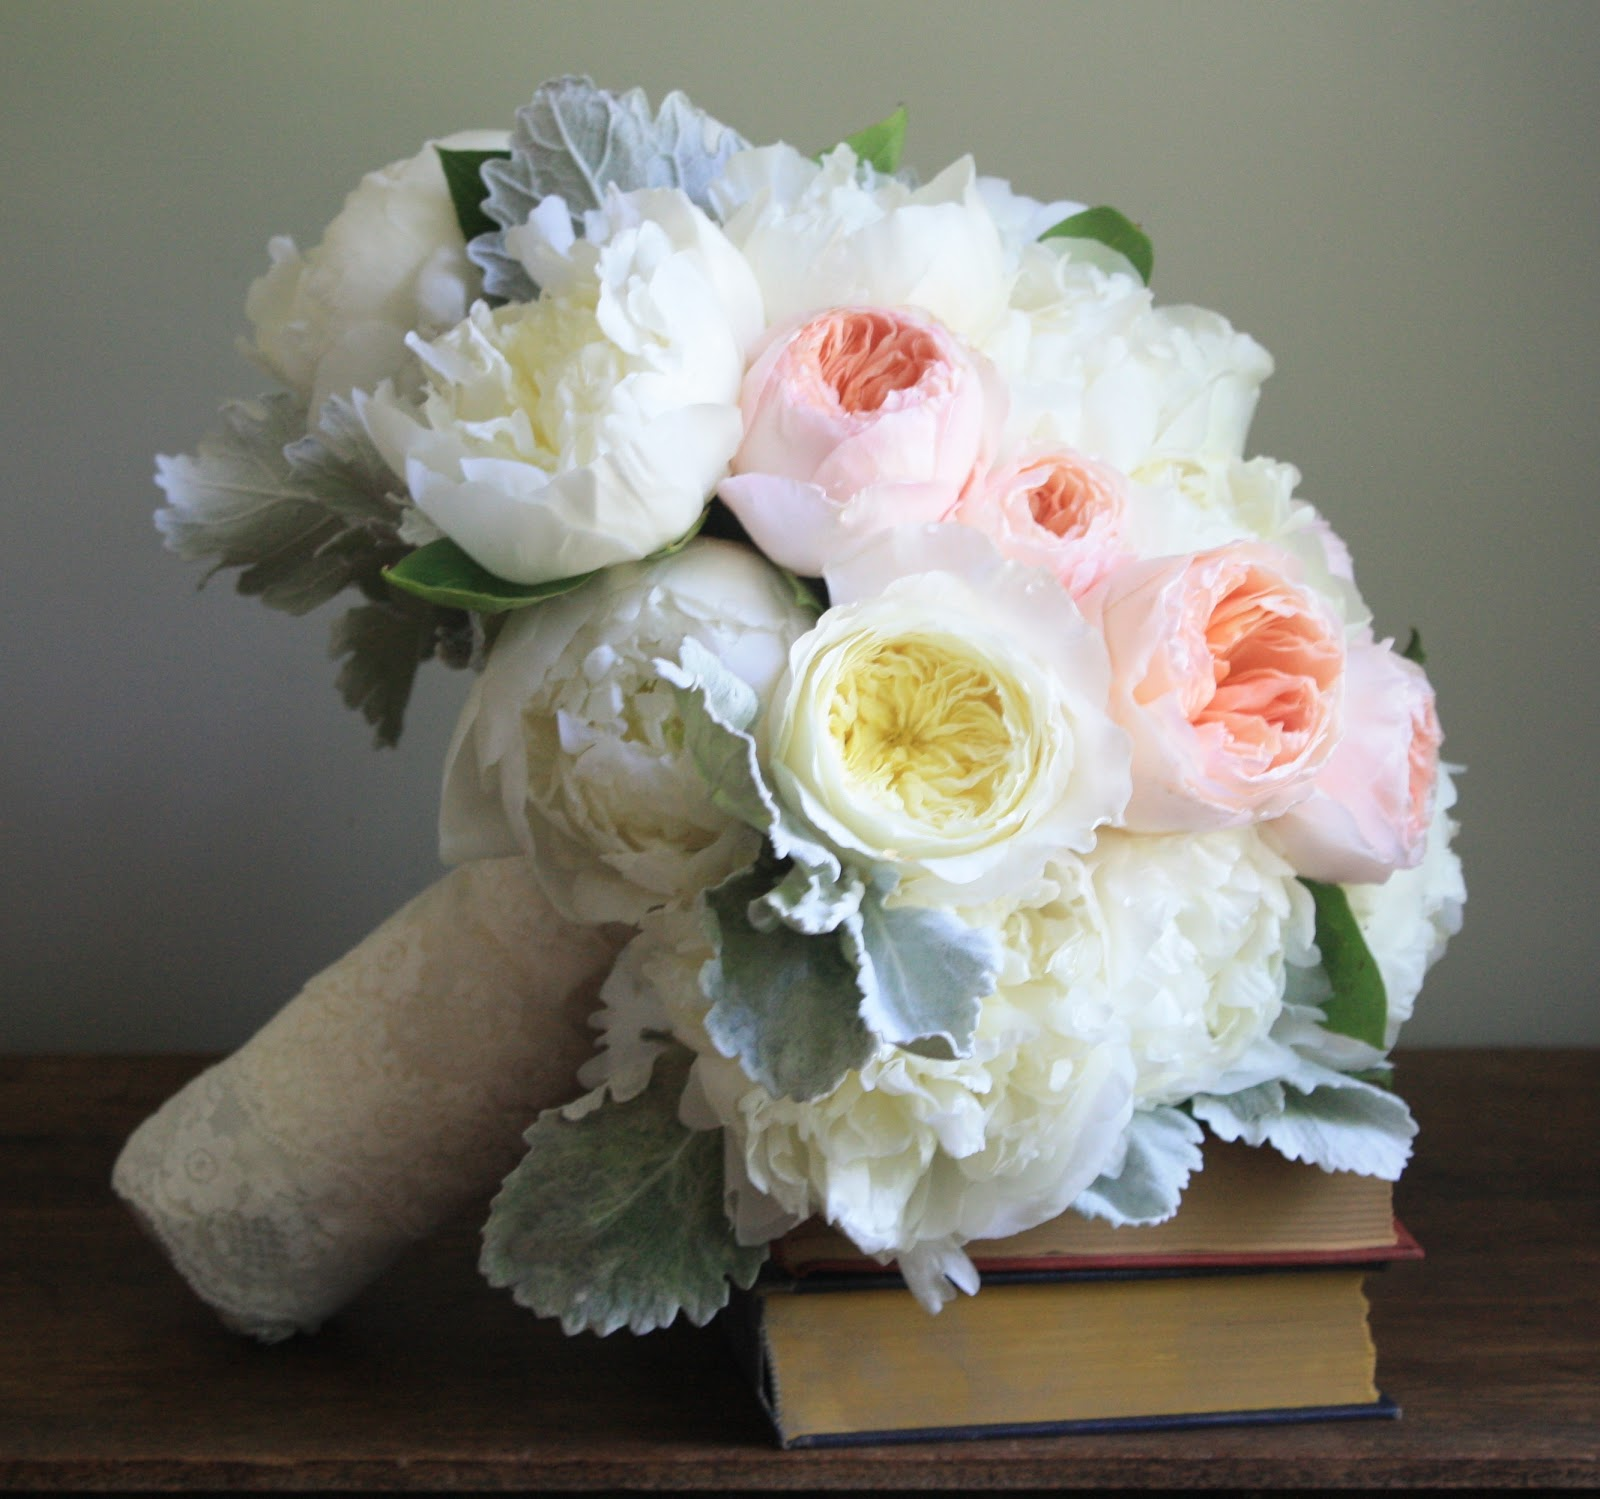 garden rose peony bouquet garden rose bouquet david austin rose bouquet juliet - Garden Rose Bouquet